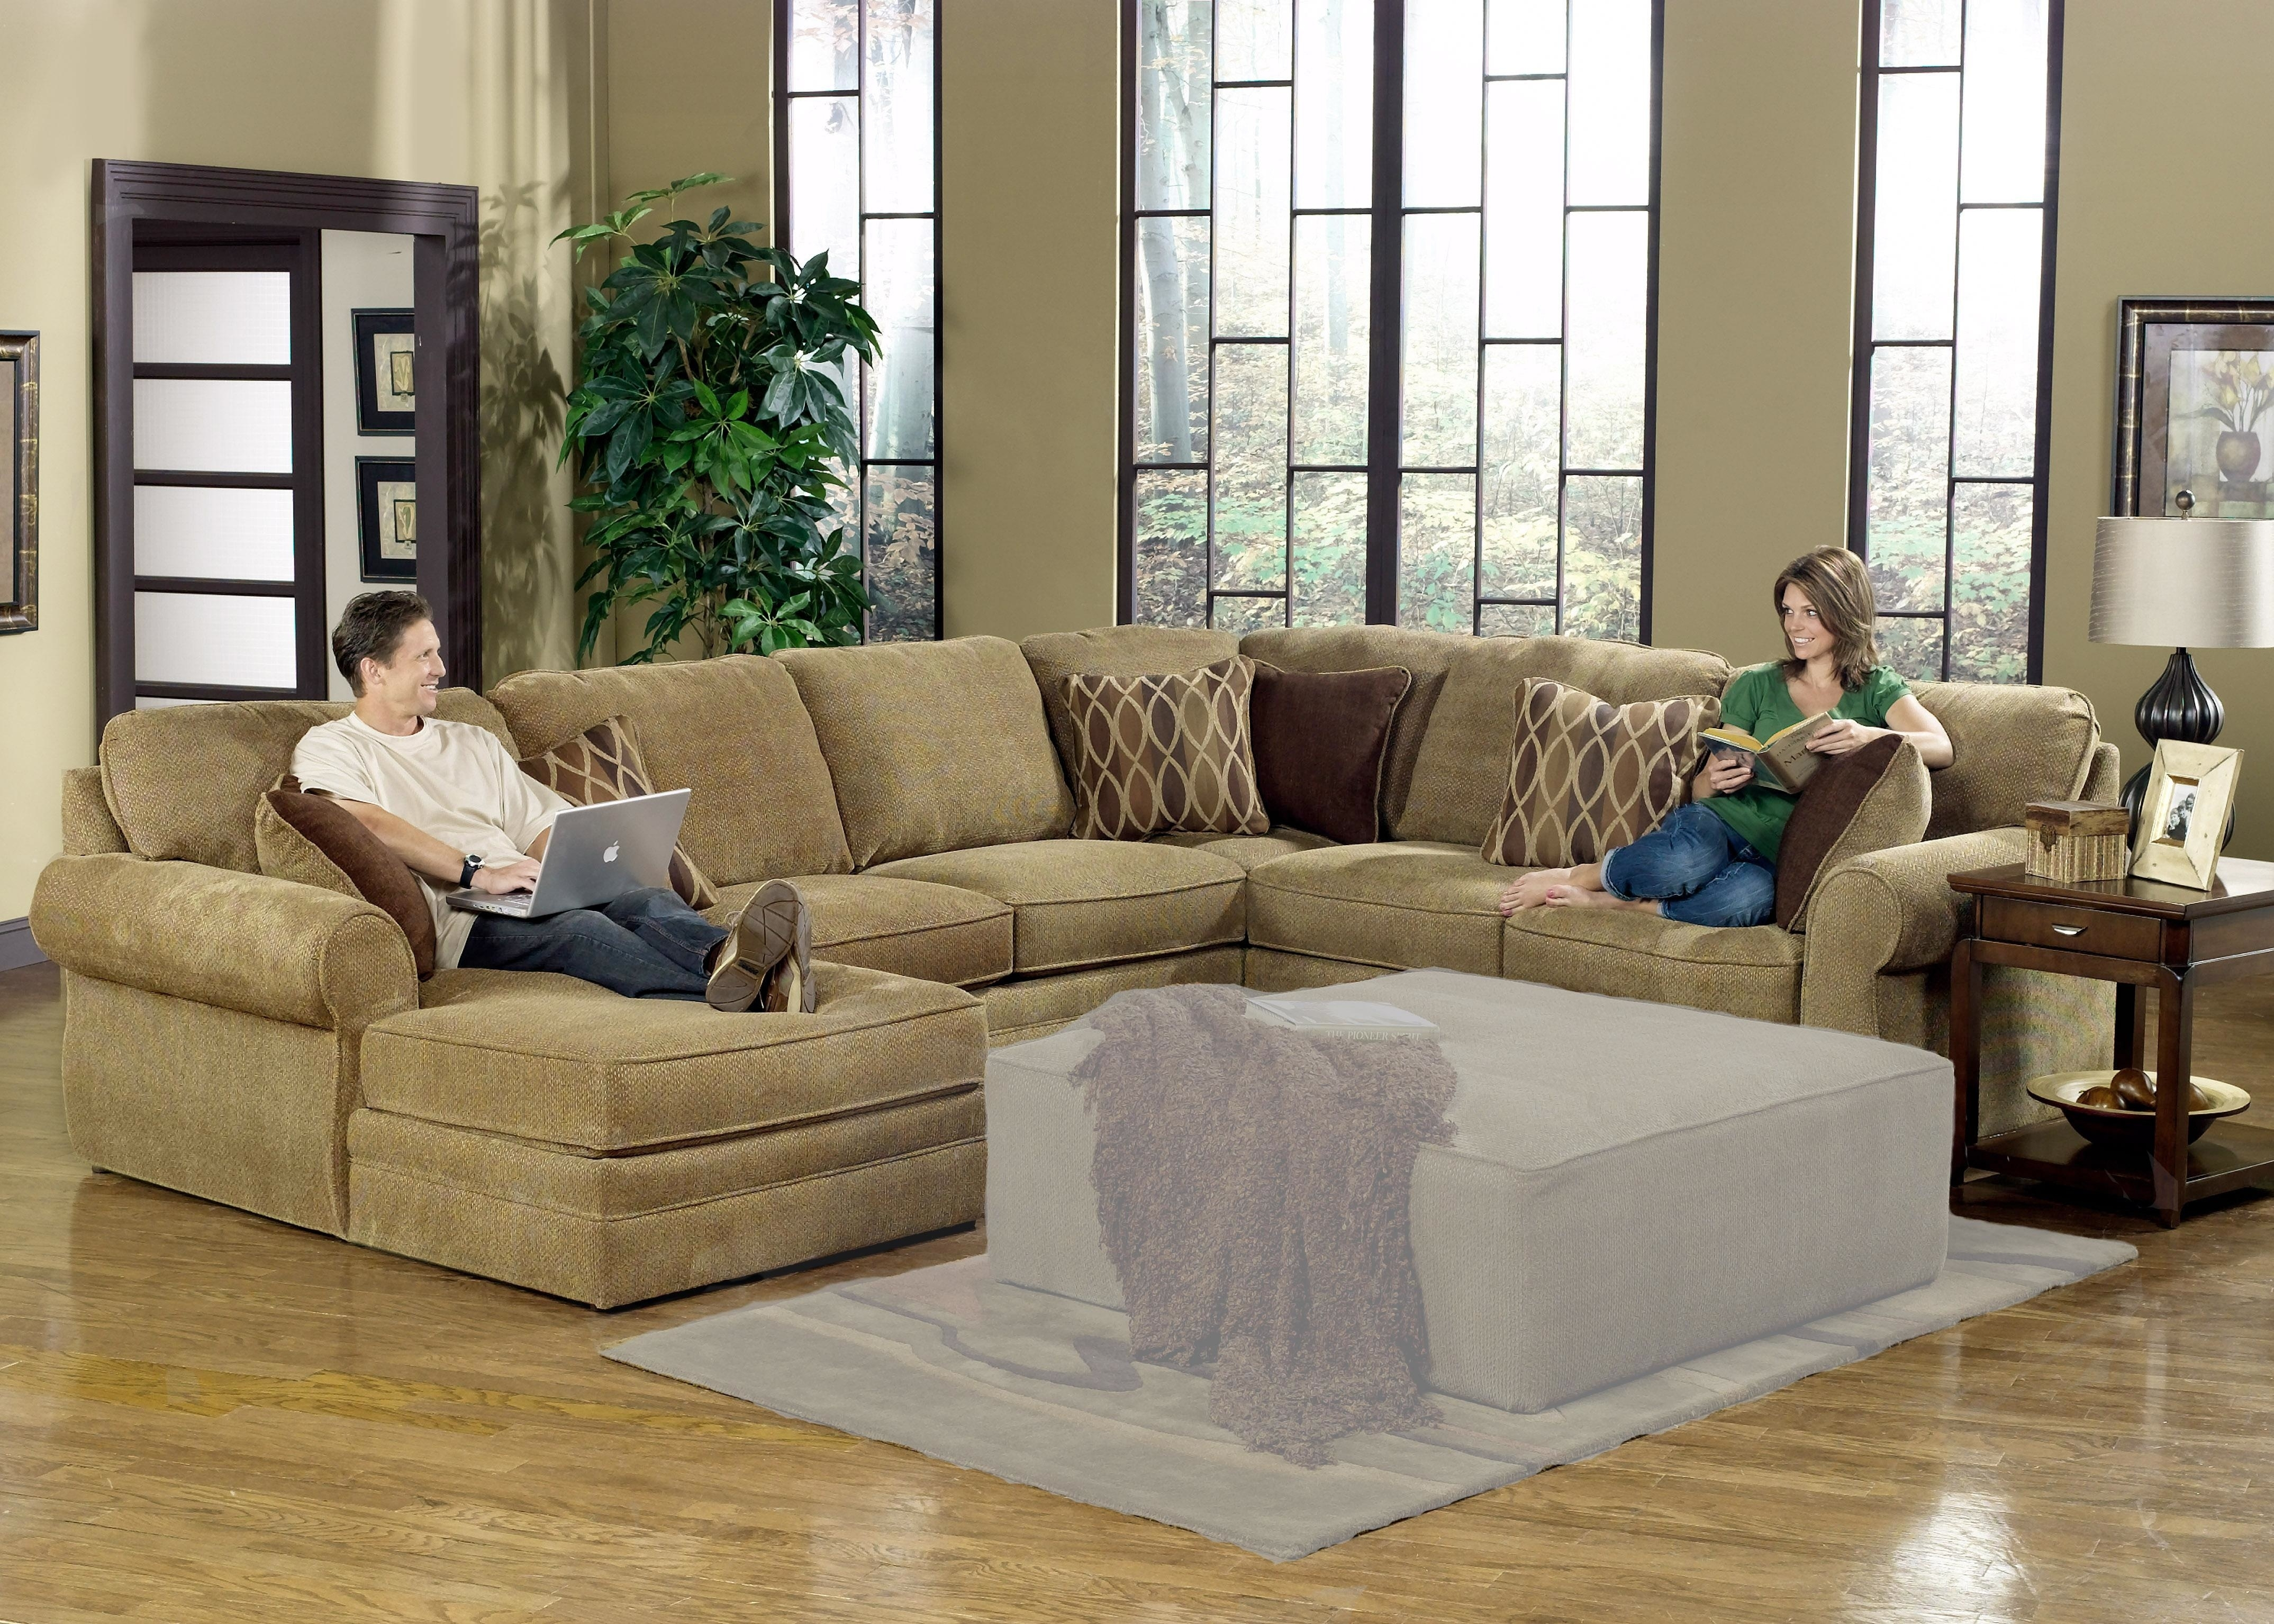 Fresh Cheap U Shaped Sectional Sofas 89 In Sleeper Sofa Atlanta With In Sectional Sofas At Atlanta (View 8 of 15)